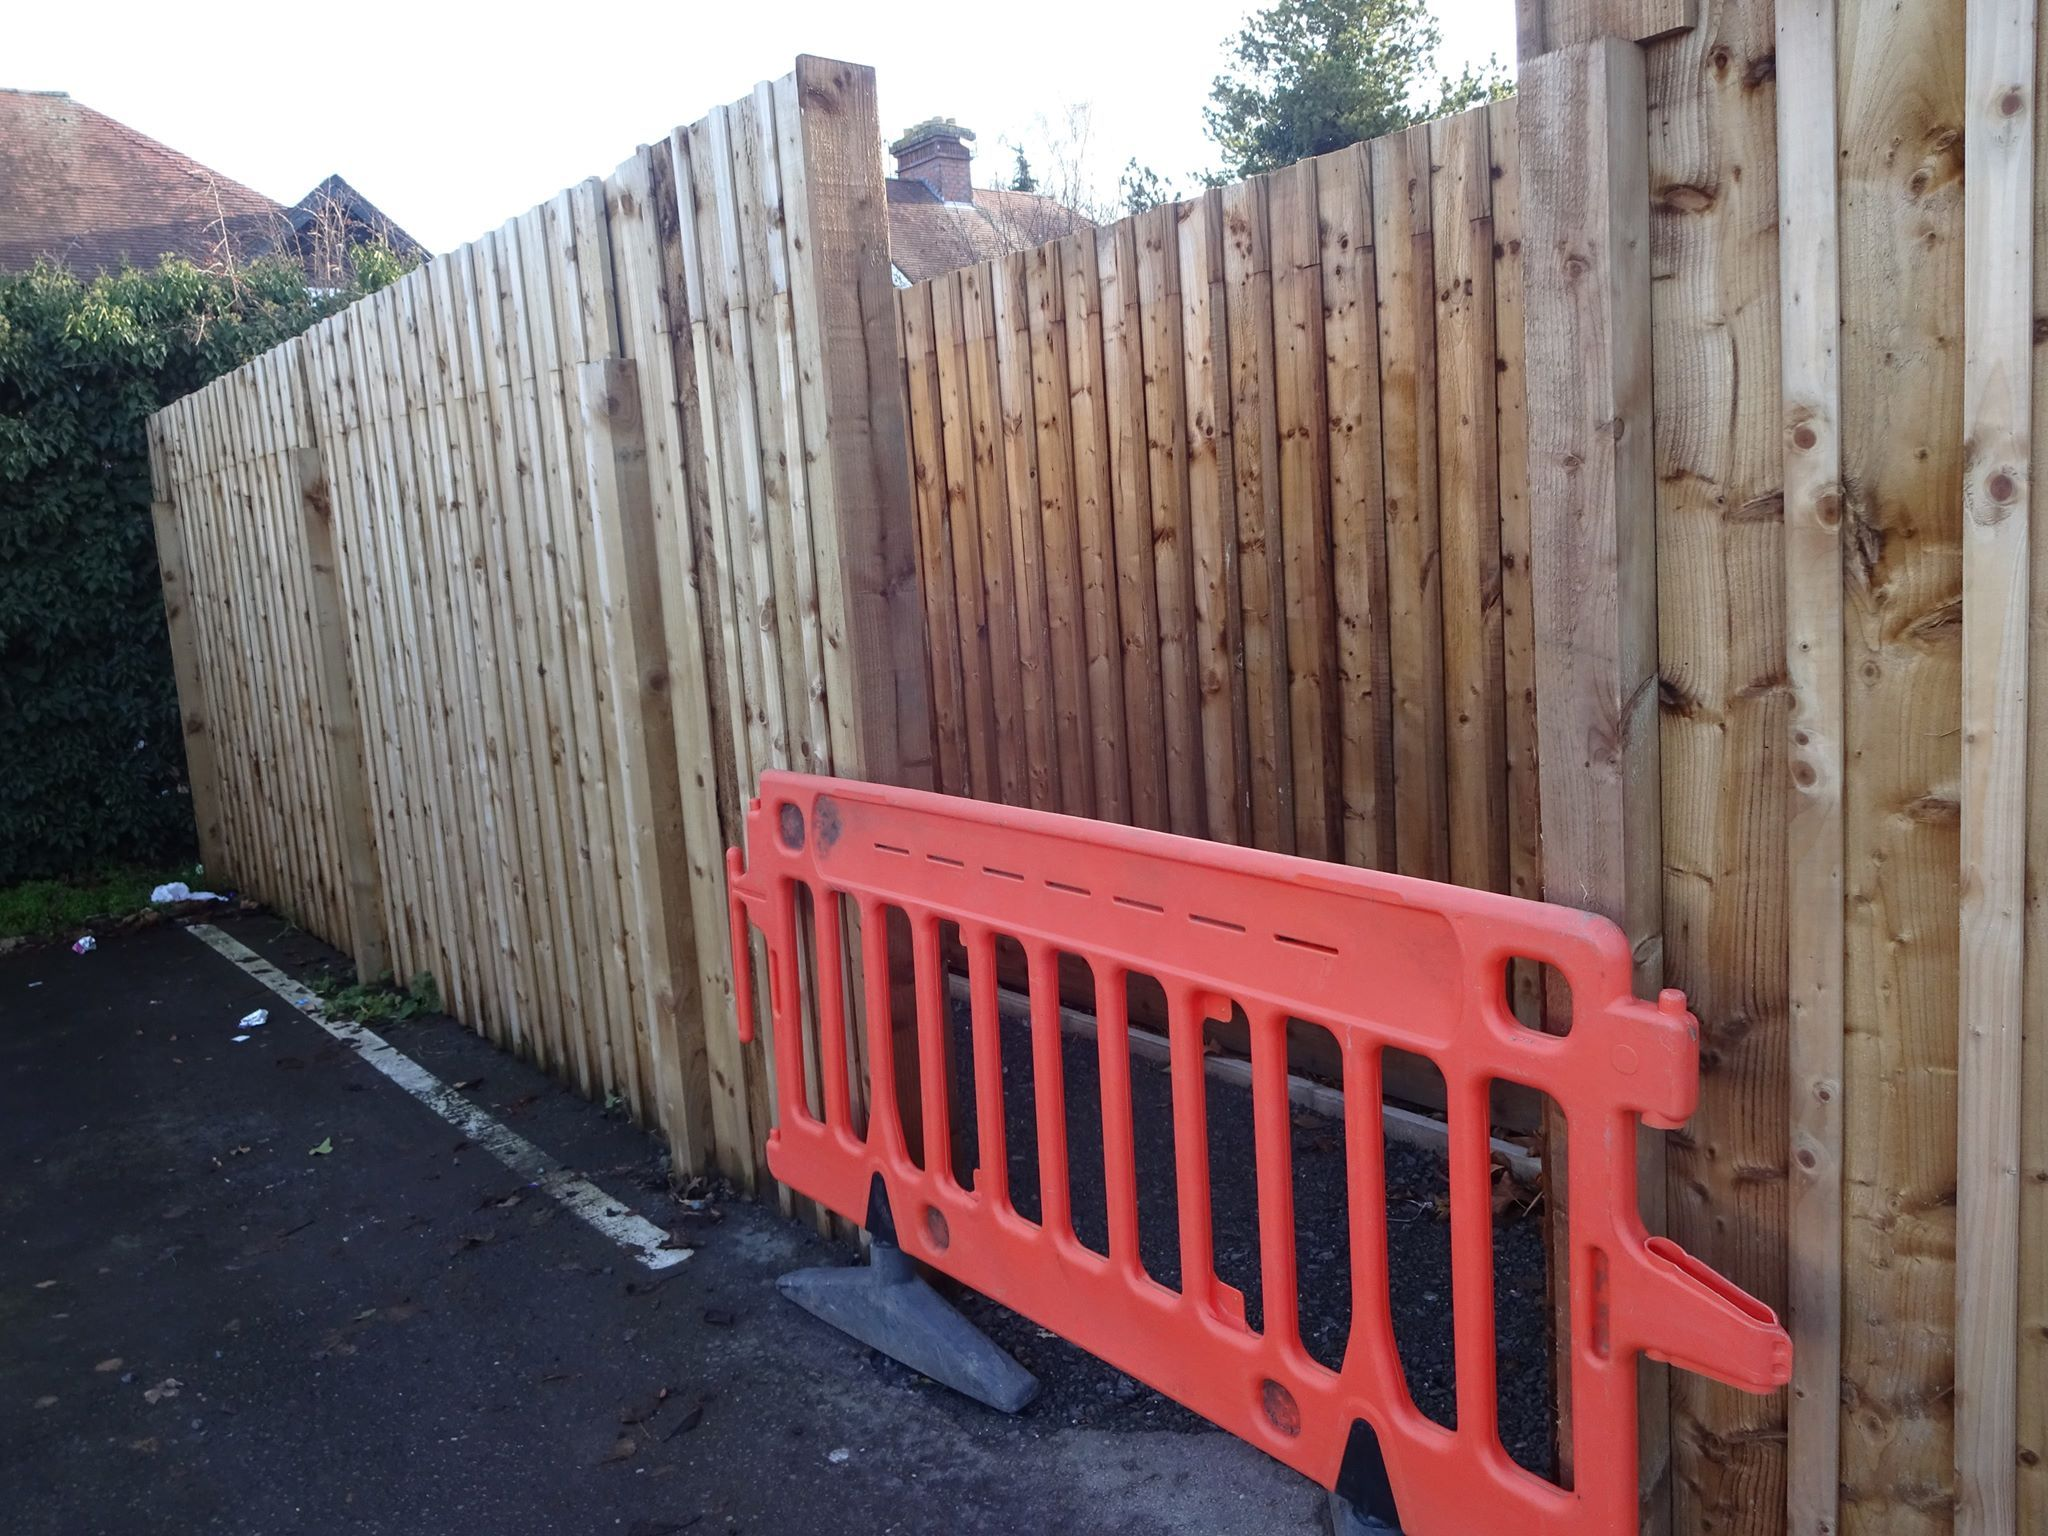 The pathway, which residents say has been there since the 1940s, is now fenced off